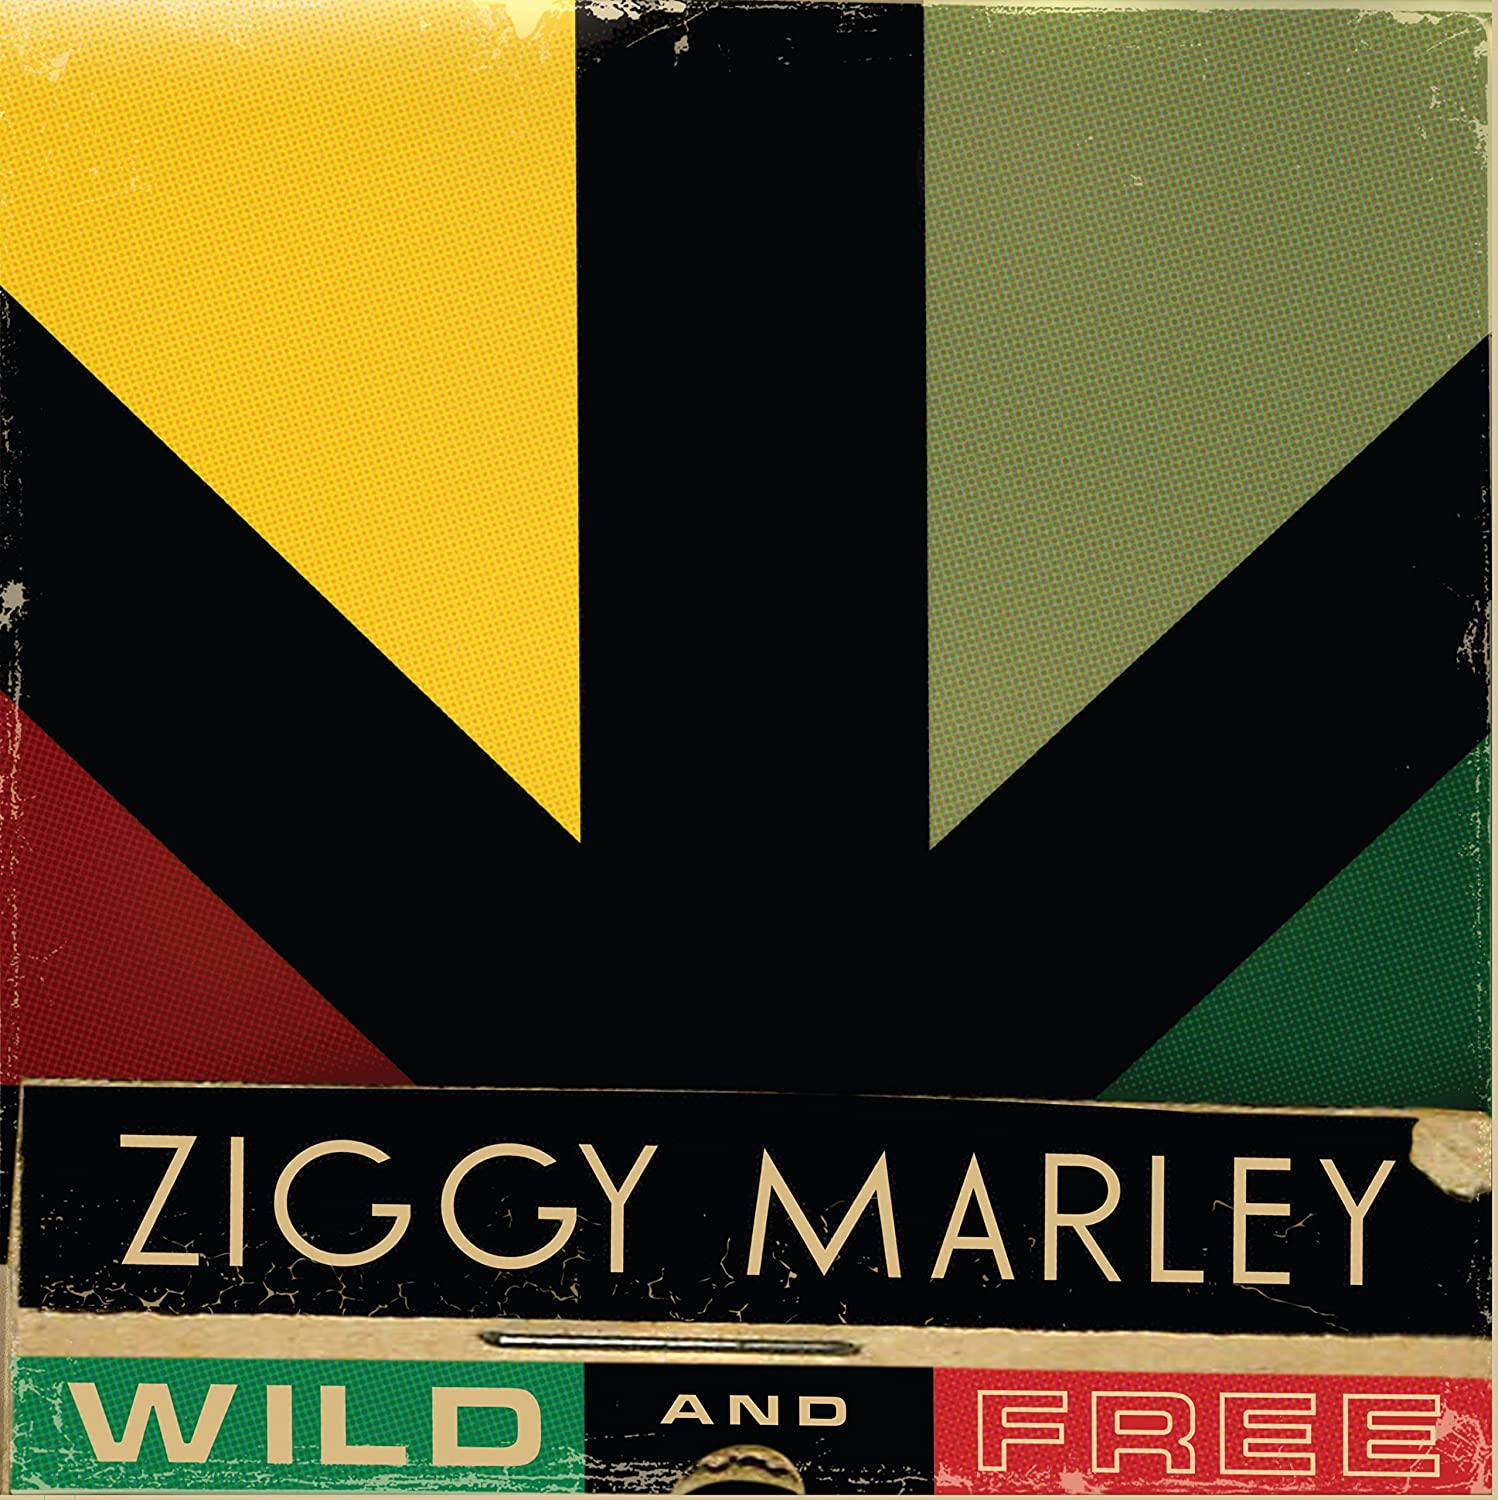 Ziggy Marley, Wild and Free